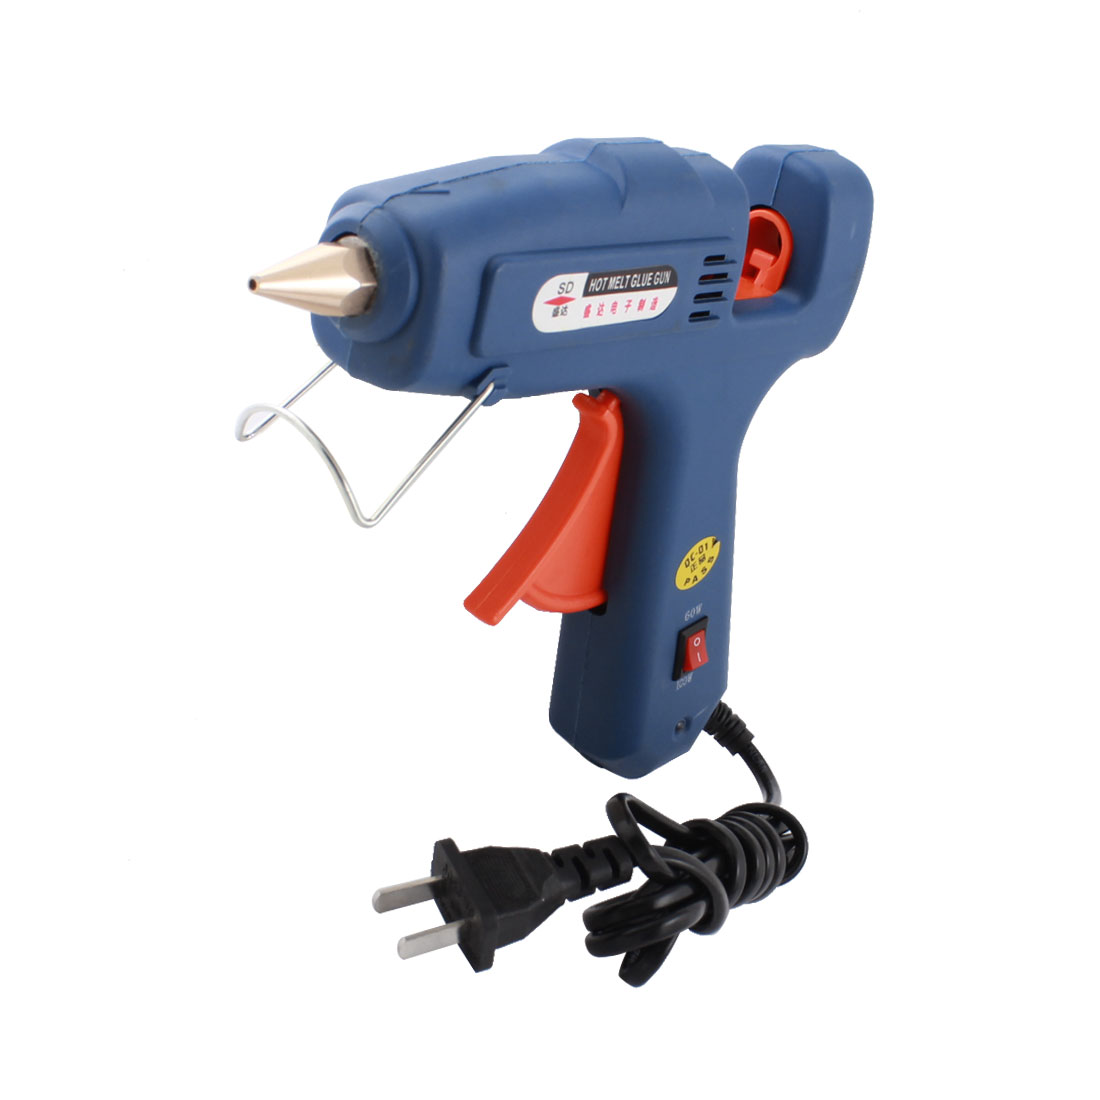 AC 100-240V US Plug 60W/100W Adjustable Triggered Electric Hot Melt Glue Gun